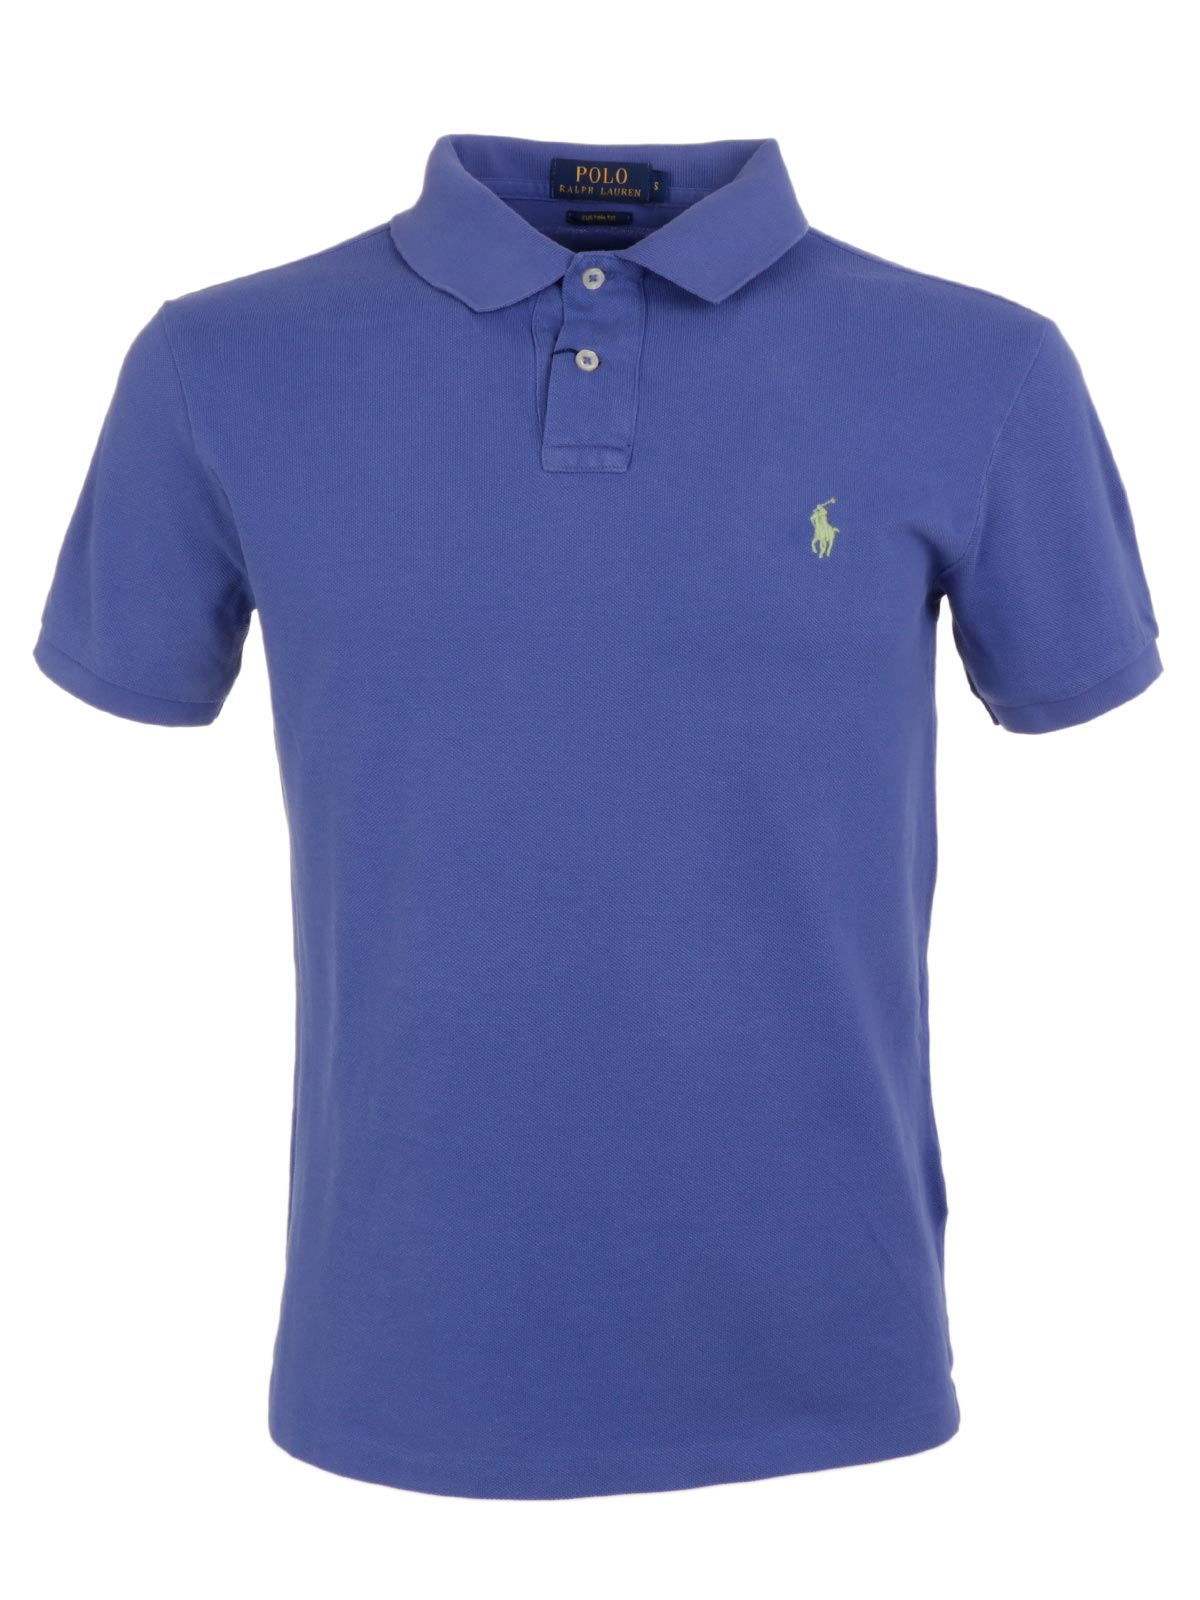 Picture of POLO RALPH LAUREN   Men's Custom Fit Polo Shirt